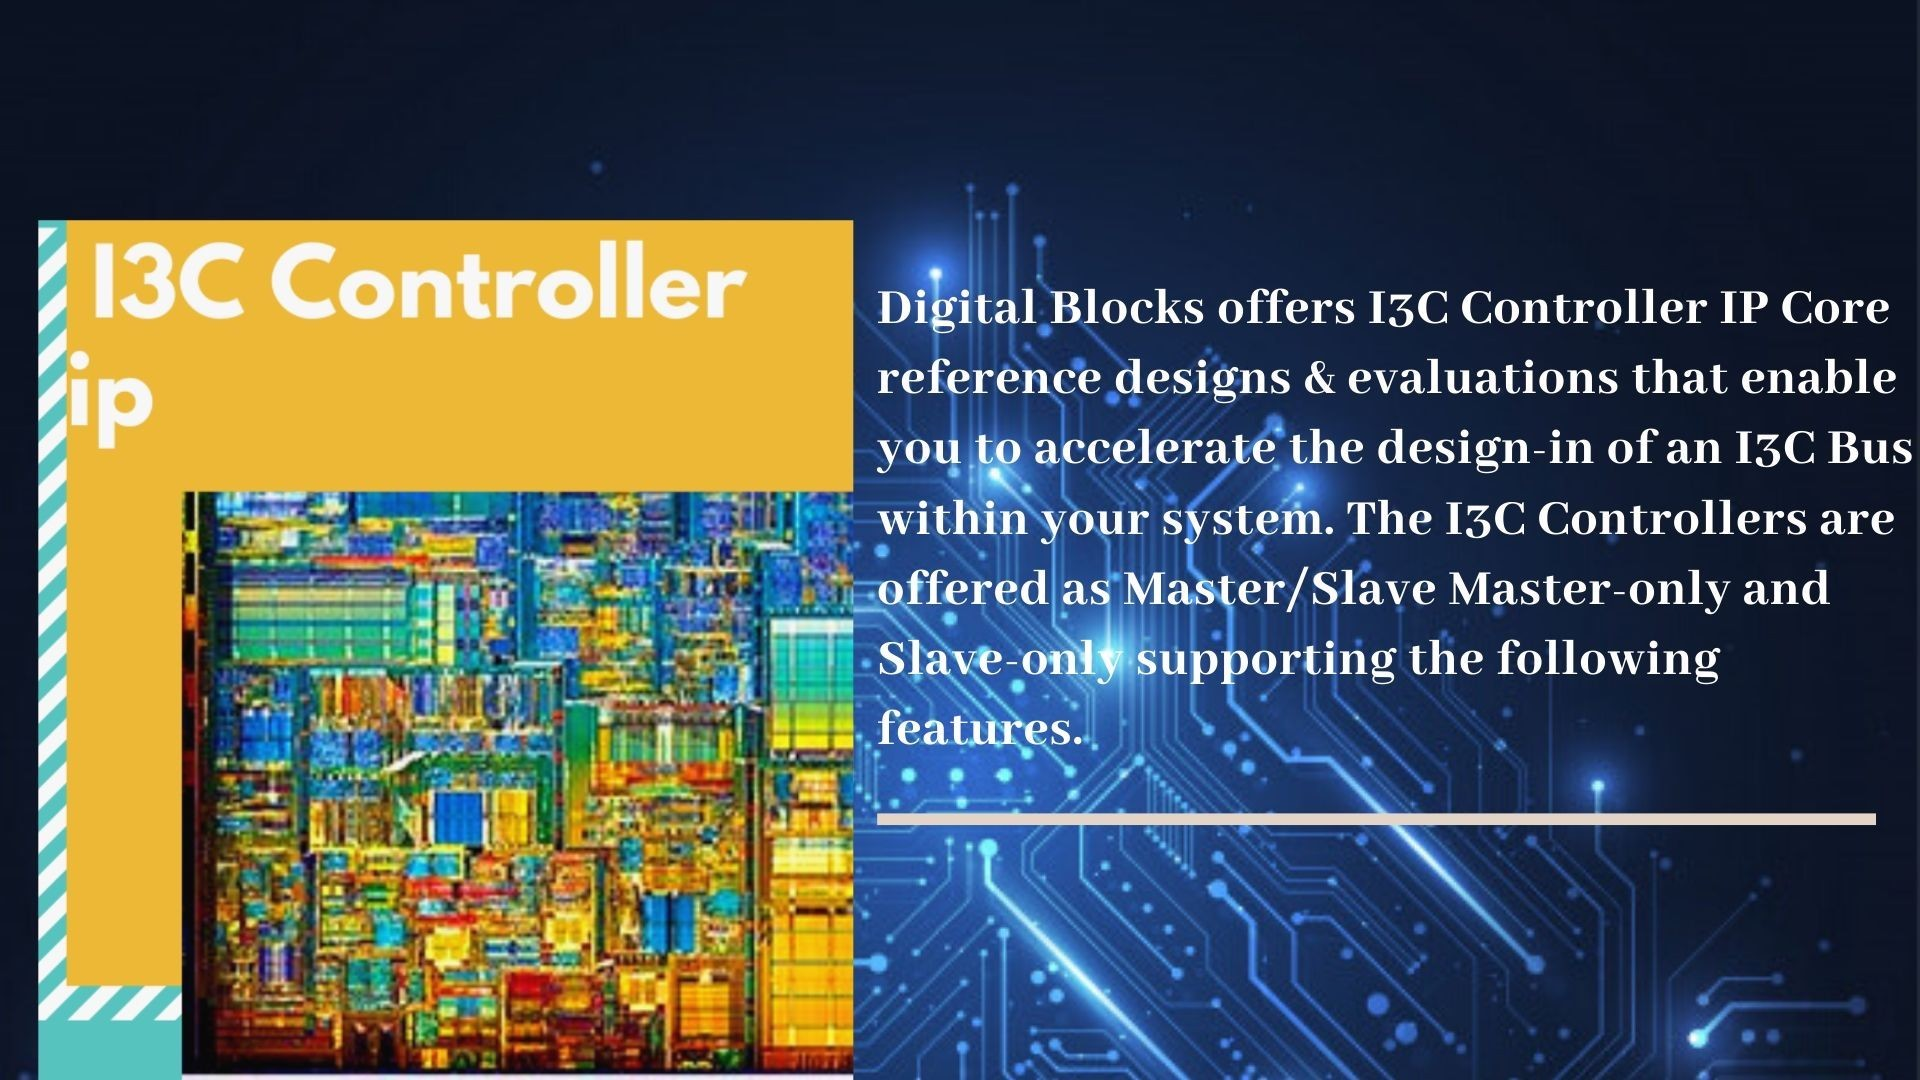 I3C Master Controller IP Core By Digital Blocks